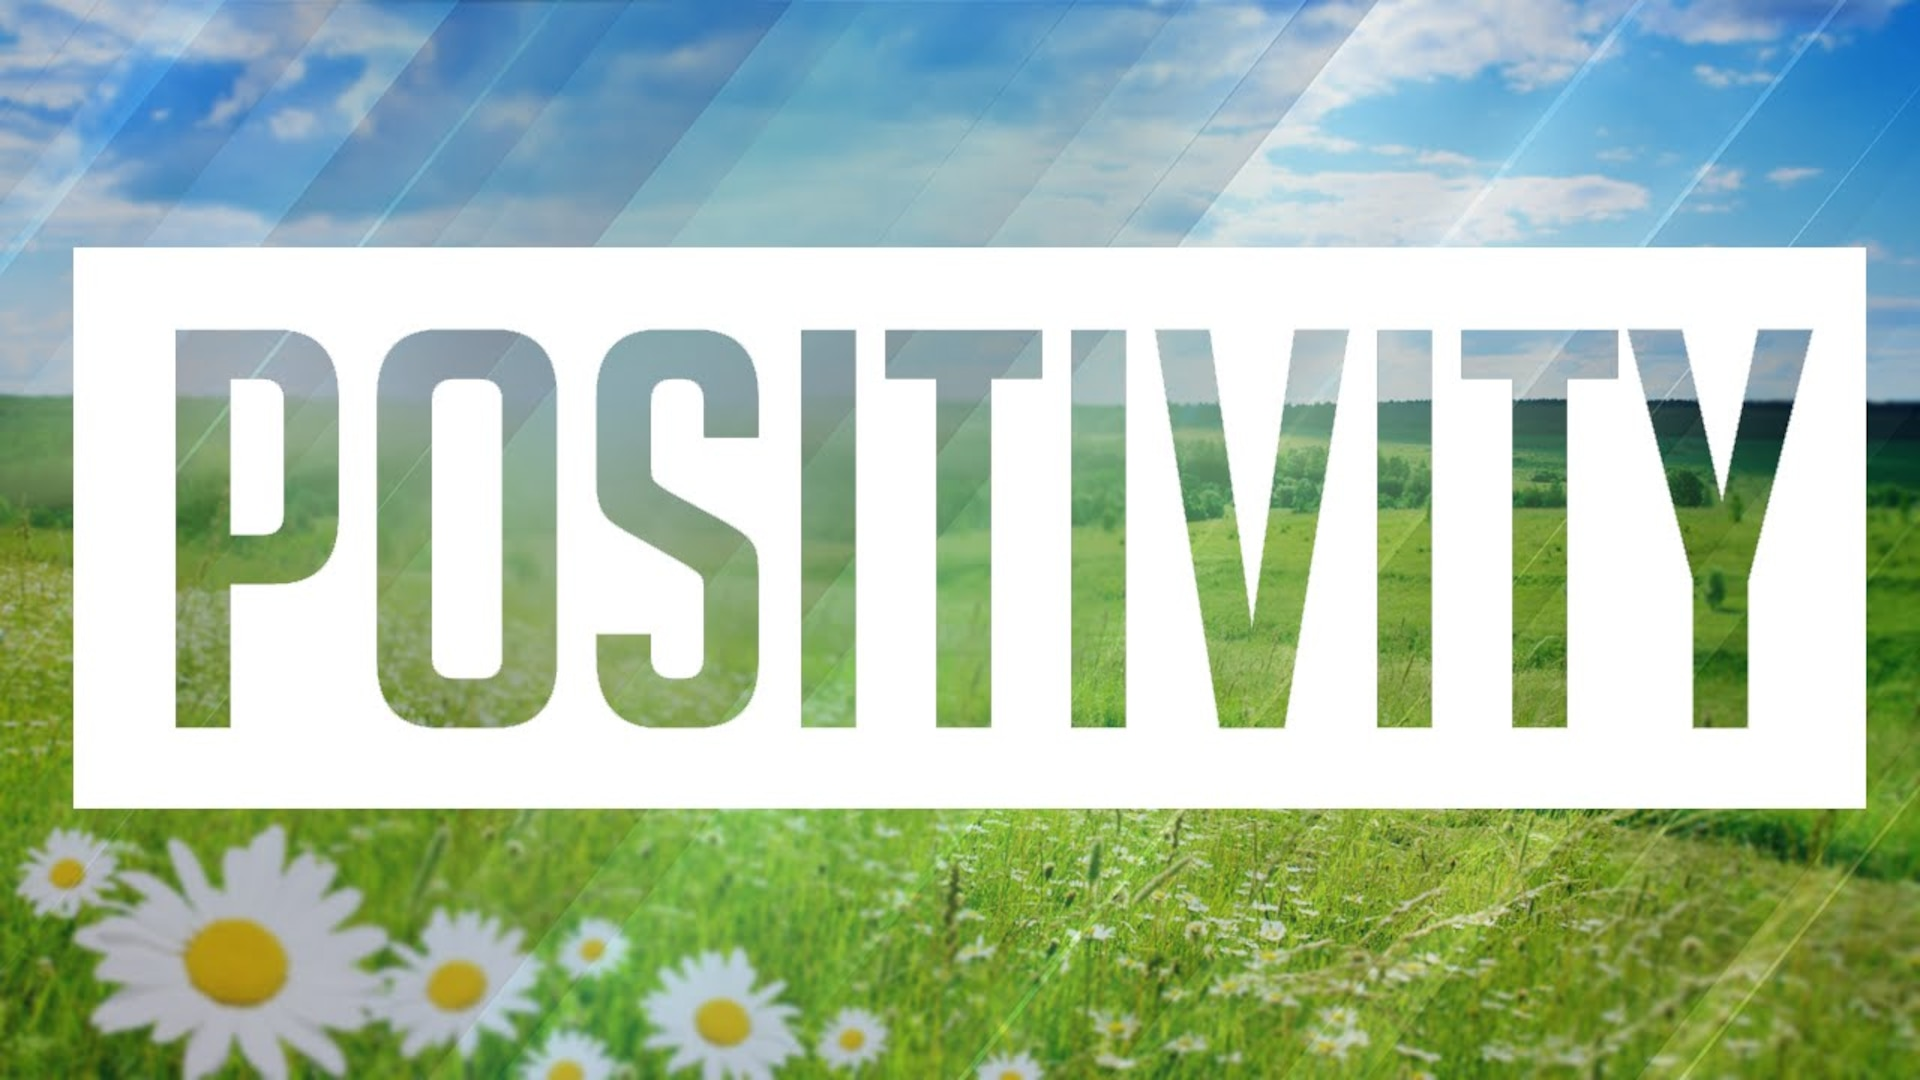 Positivity in leadership is contagious. You know what's more contagious then positivity?  Negativity. Changing a few words can flip around a thought.